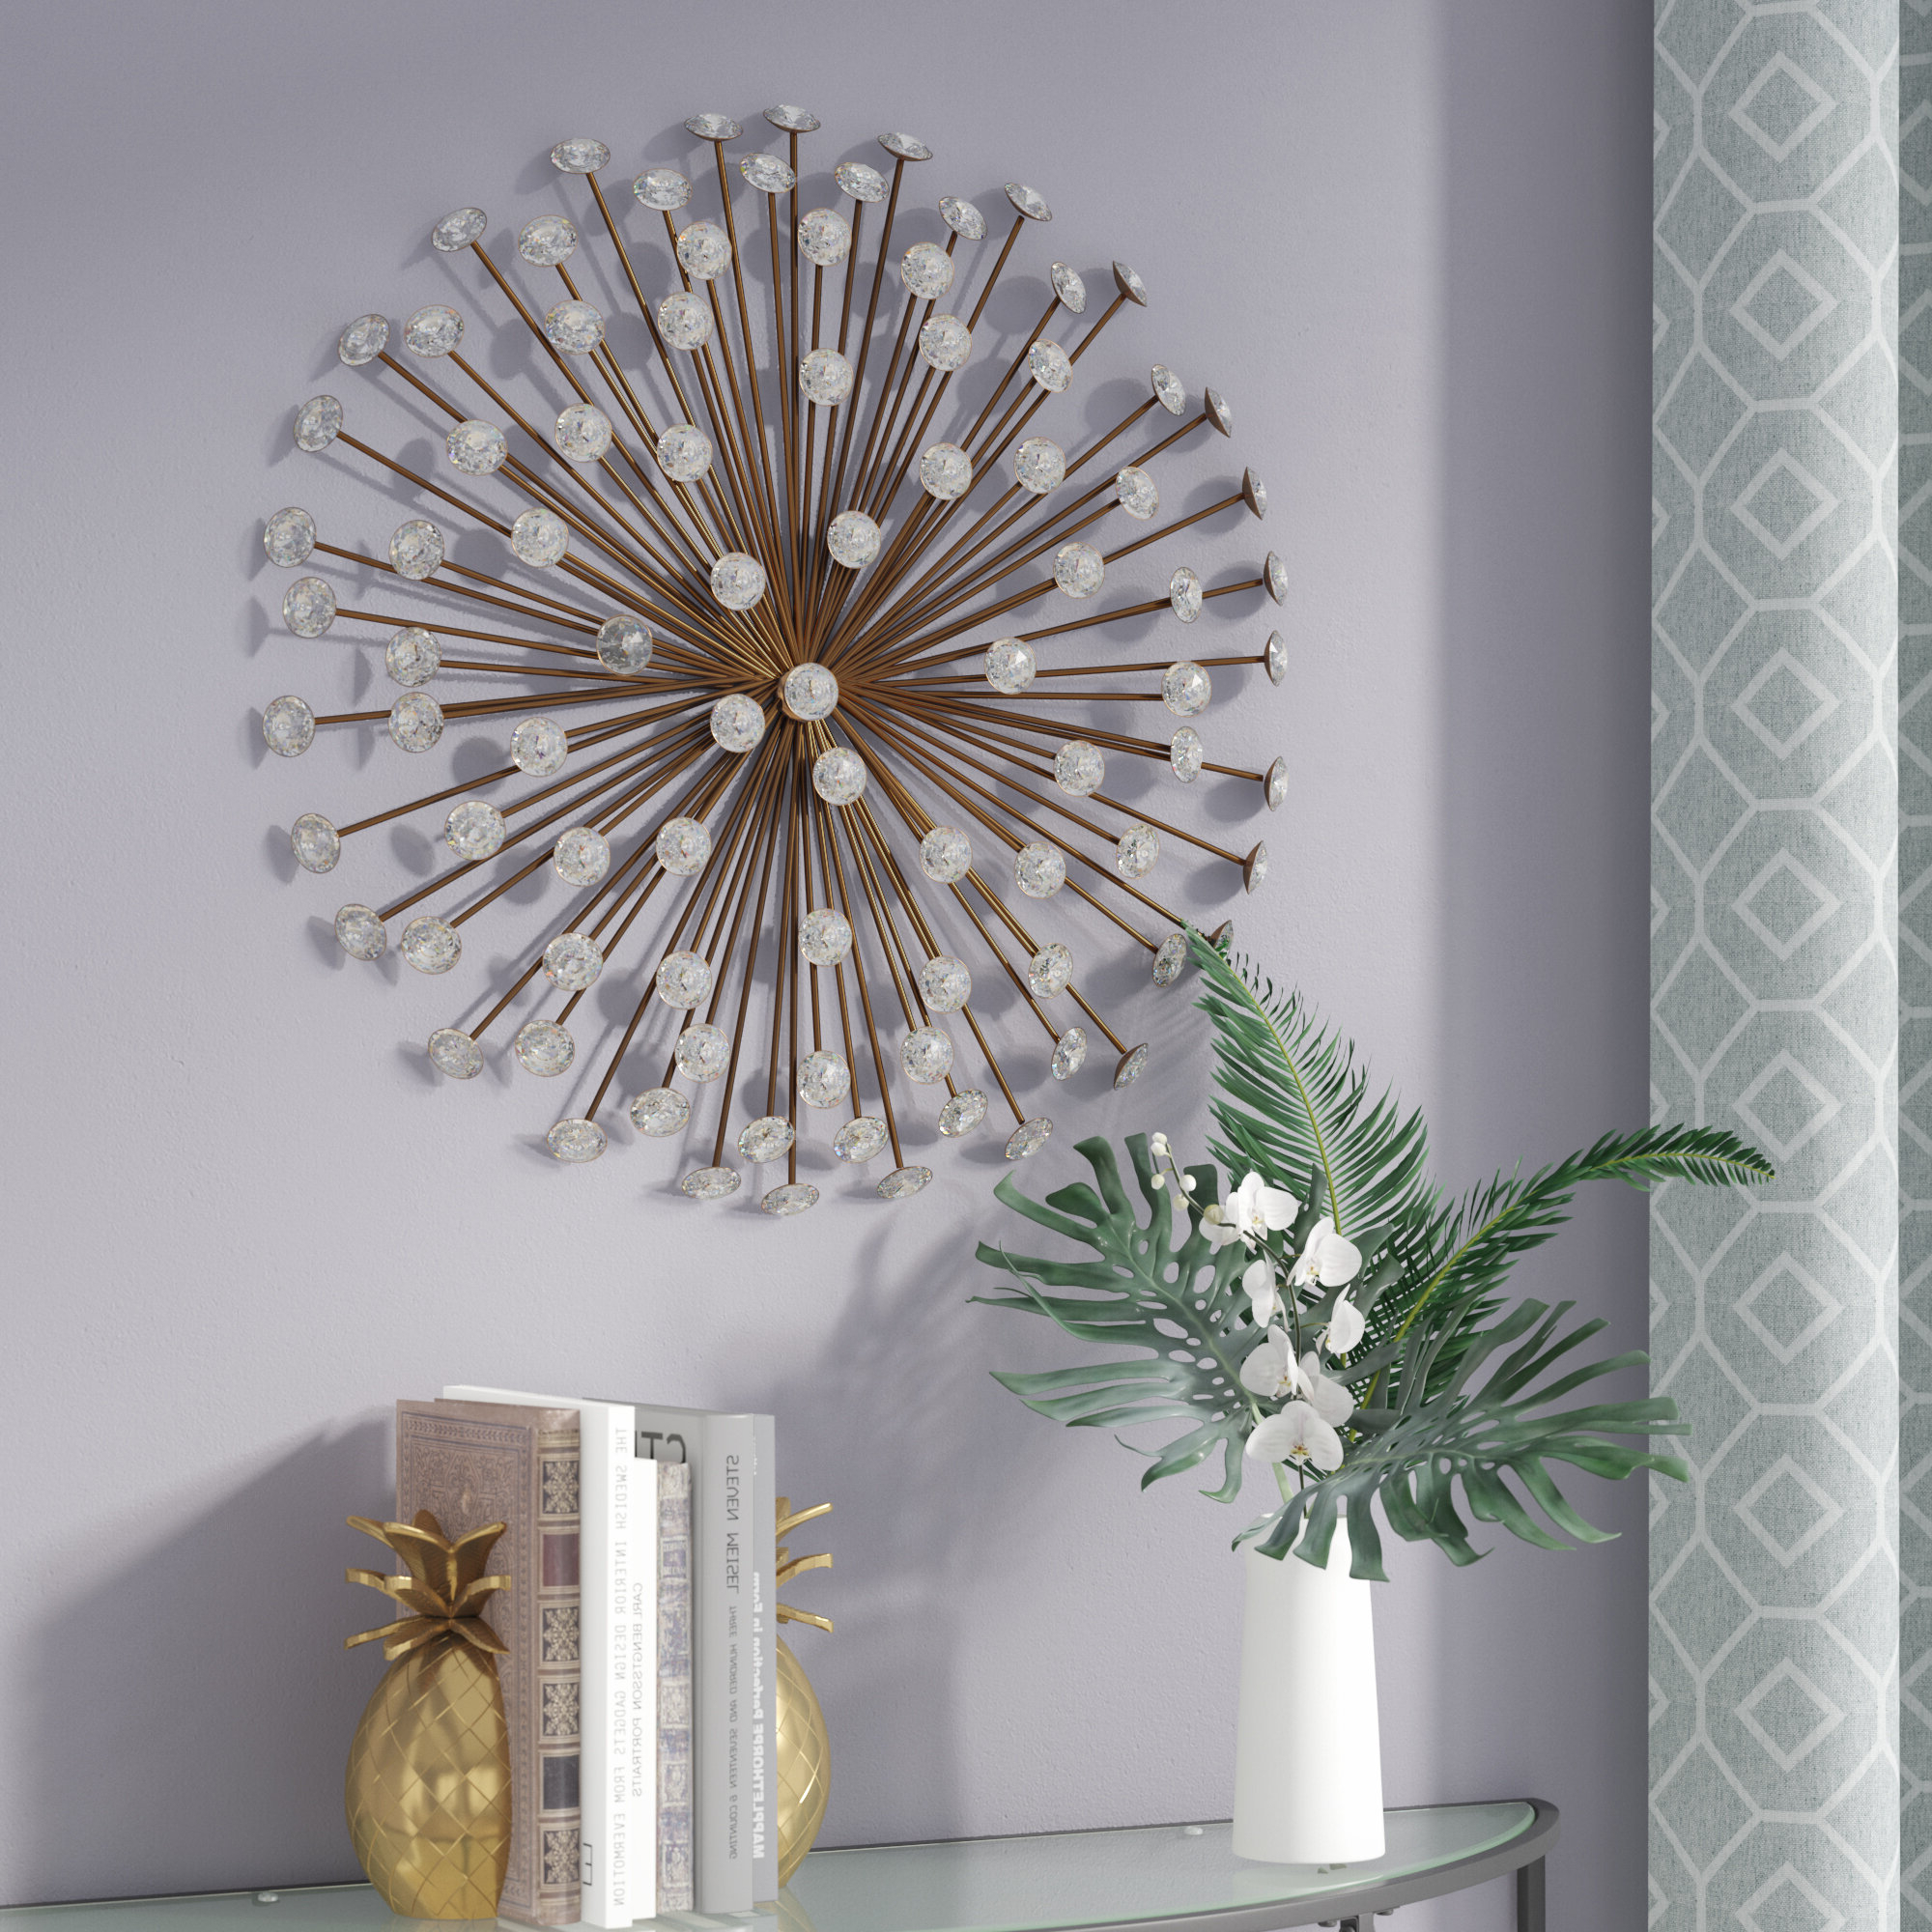 [%metal Wall Decor | Up To 60% Off Through 02/16 Pertaining To 2020 Olive/gray Metal Wall Decor By Brayden Studio|olive/gray Metal Wall Decor By Brayden Studio Pertaining To Popular Metal Wall Decor | Up To 60% Off Through 02/16|recent Olive/gray Metal Wall Decor By Brayden Studio With Metal Wall Decor | Up To 60% Off Through 02/16|preferred Metal Wall Decor | Up To 60% Off Through 02/16 Inside Olive/gray Metal Wall Decor By Brayden Studio%] (View 10 of 20)